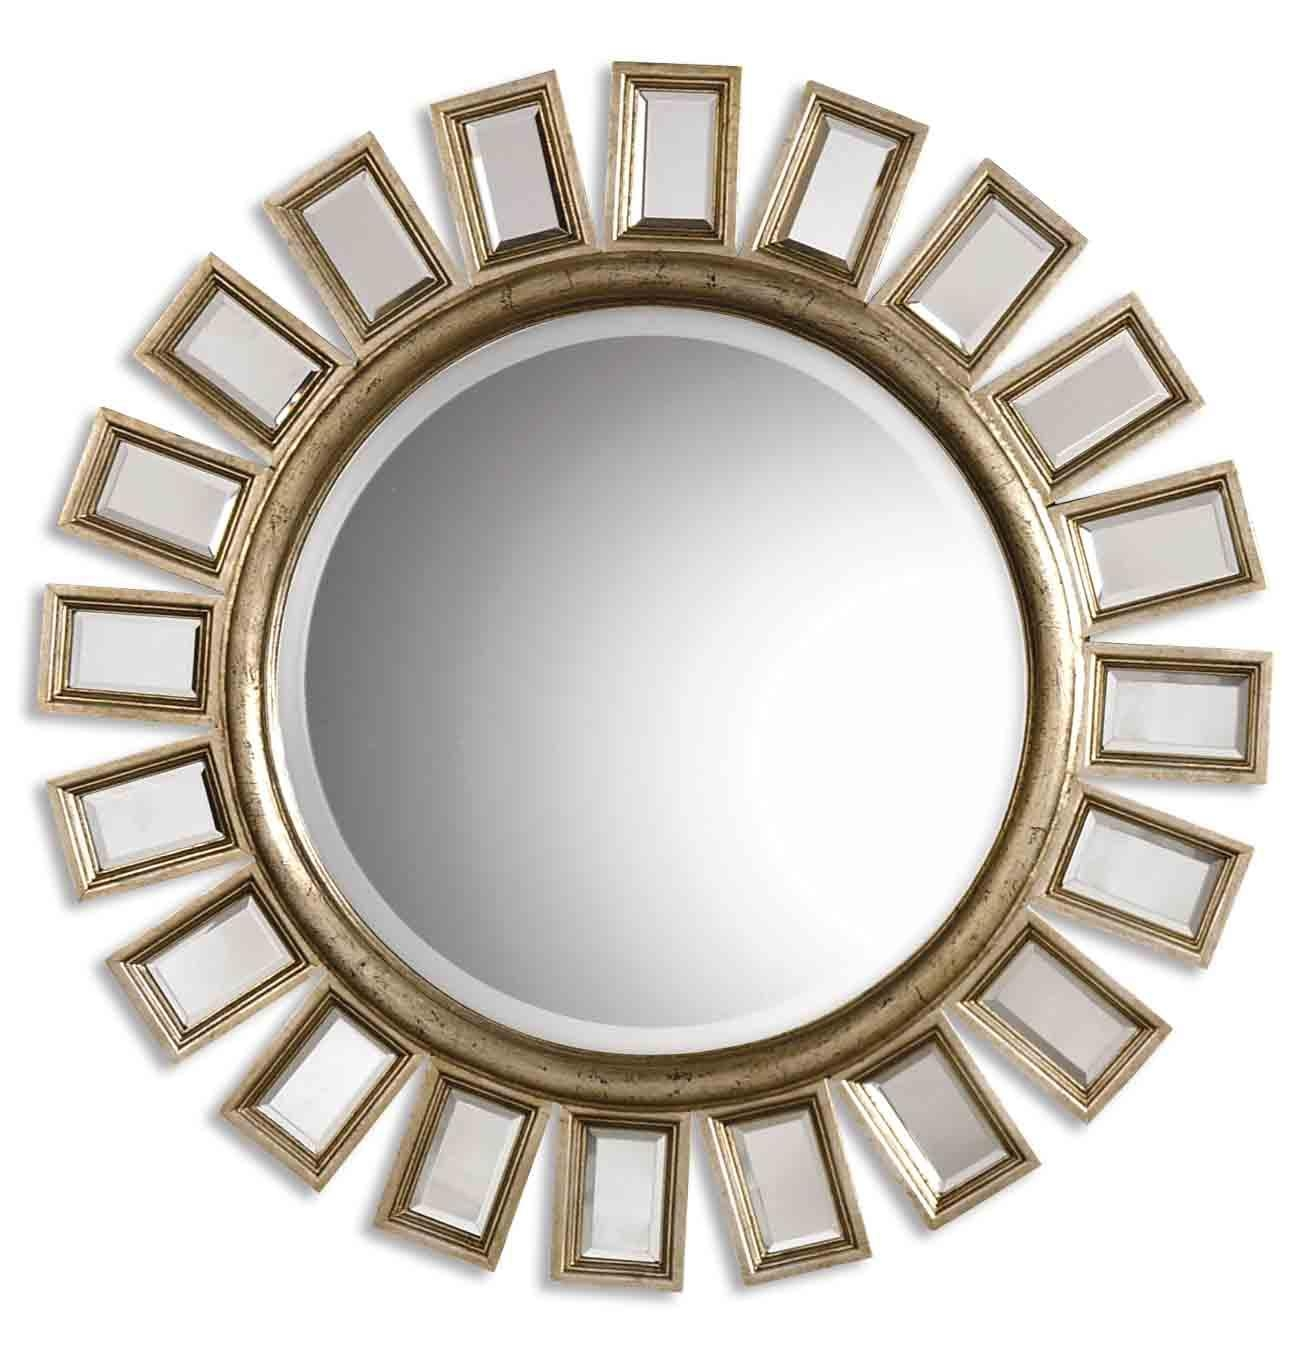 Uttermost Cyrus Round Silver Mirror 14076 B With Large Round Silver Mirror (Image 20 of 20)